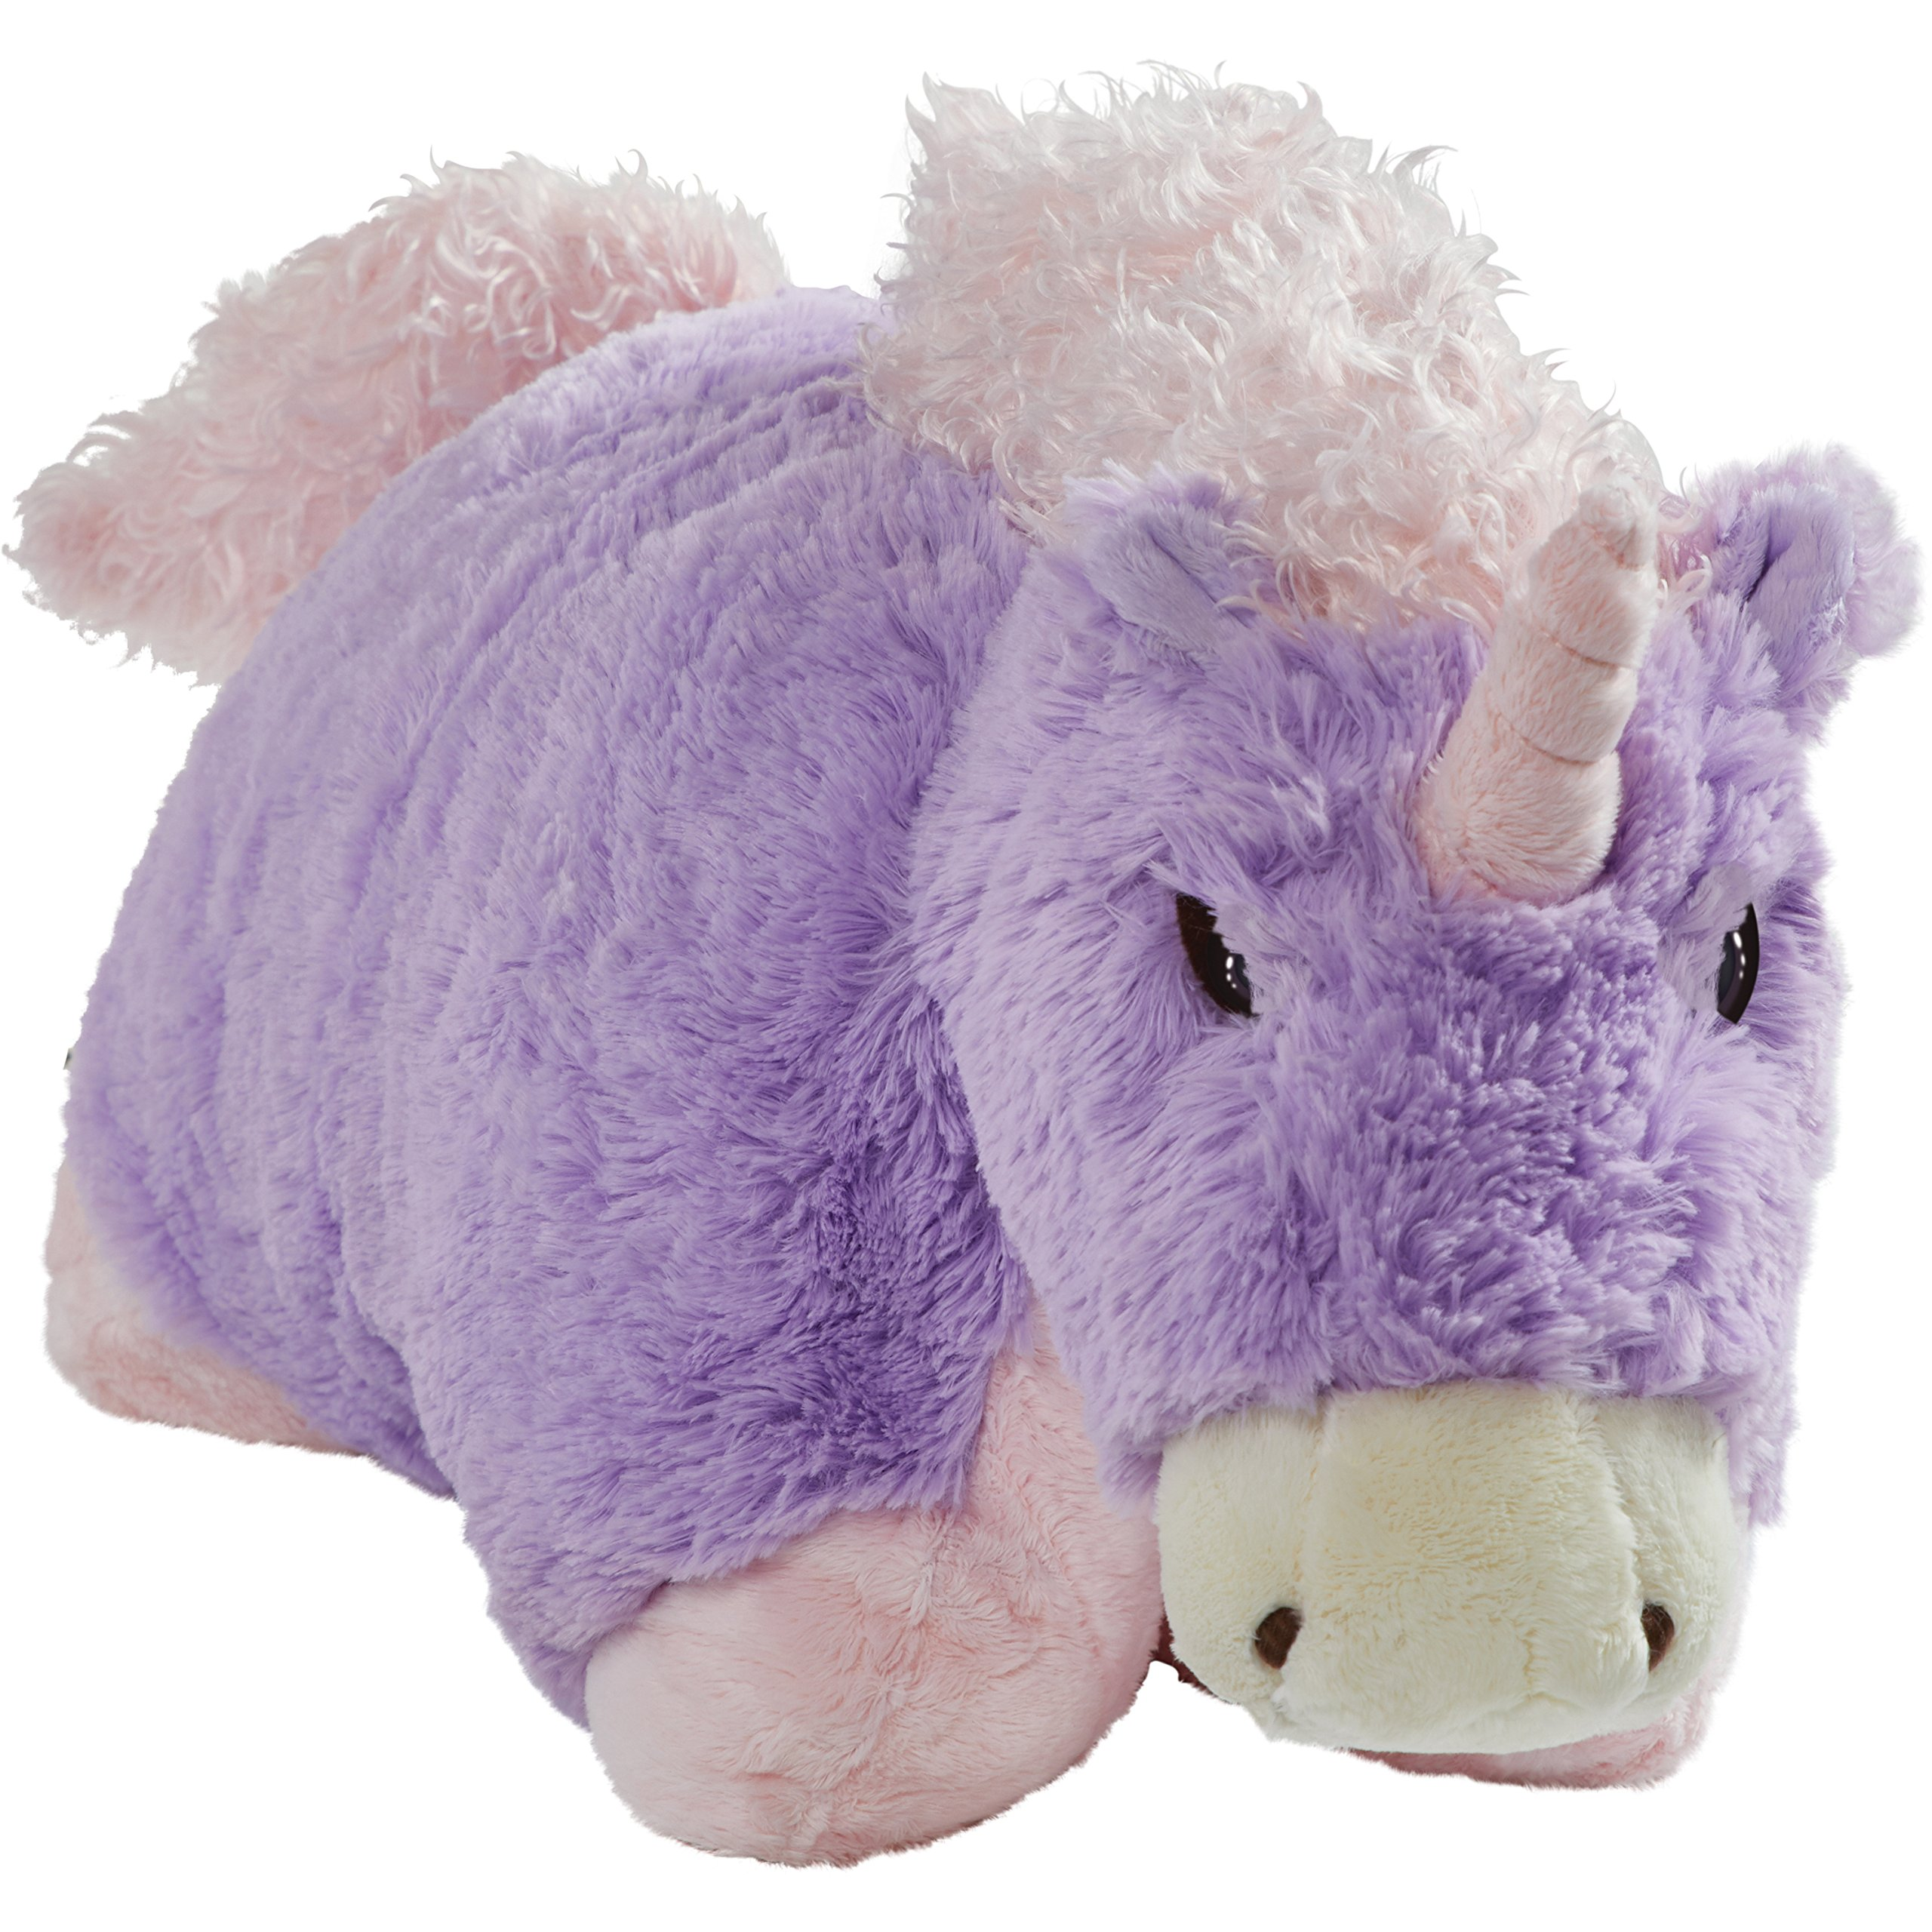 Pillow Pets Signature Stuffed Animal Plush Toy 18'', Lavender Unicorn